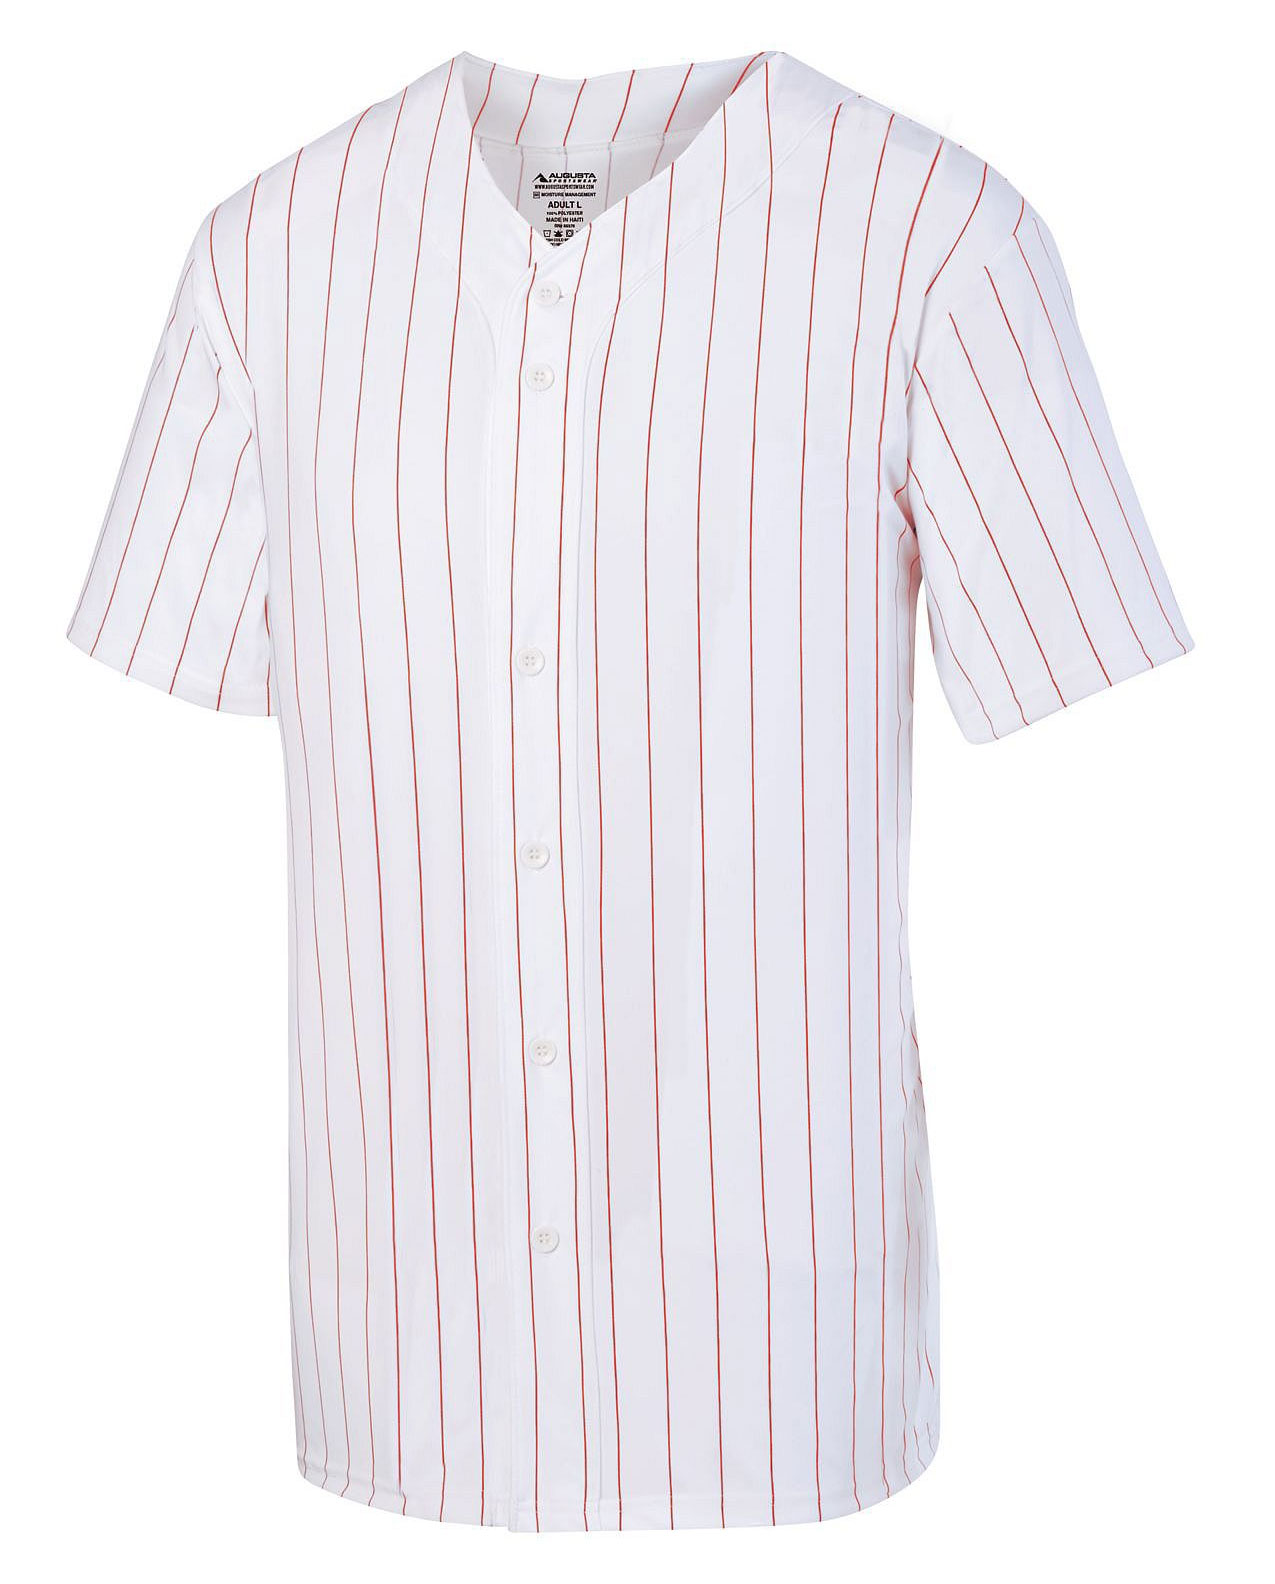 Augusta Youth Pinstripe Full Button Baseball Jersey